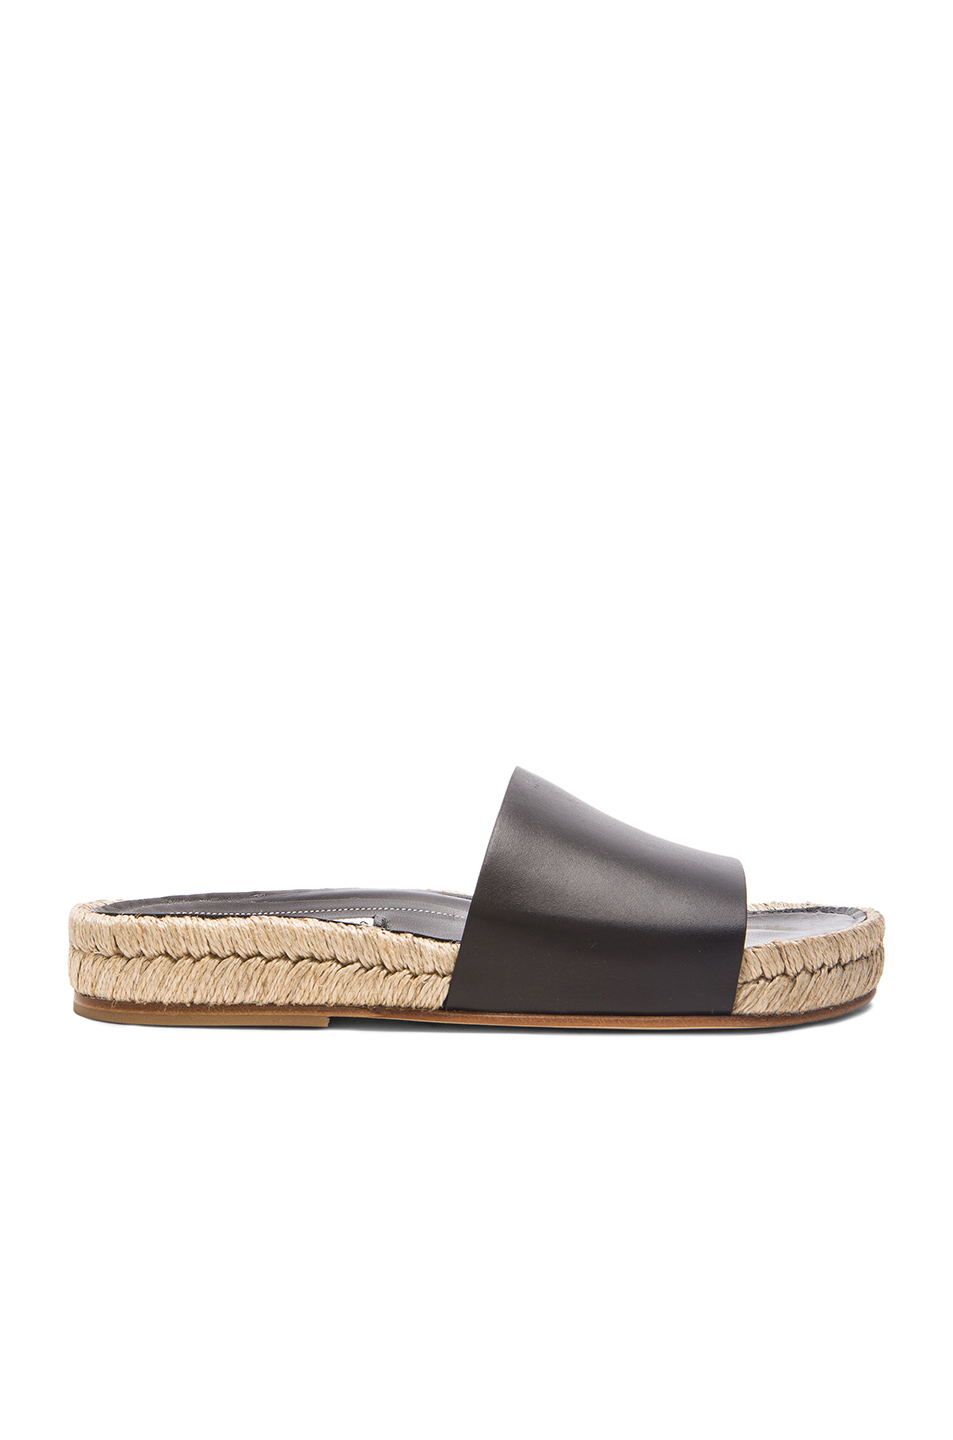 Balenciaga Box Leather Slide Sandals In Black Lyst